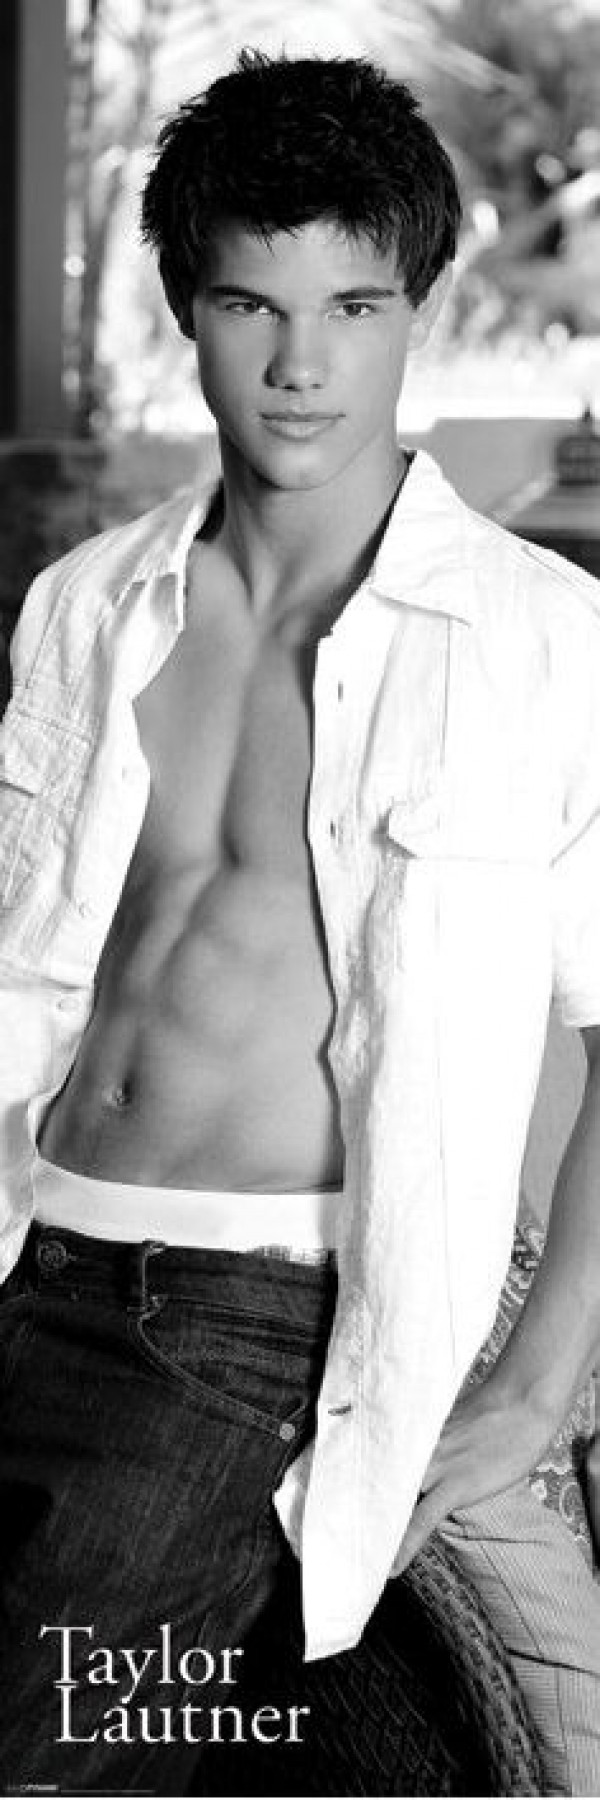 Taylor Lautner Six Pack door poster featuring the Twilight star with open white shirt and bare chest